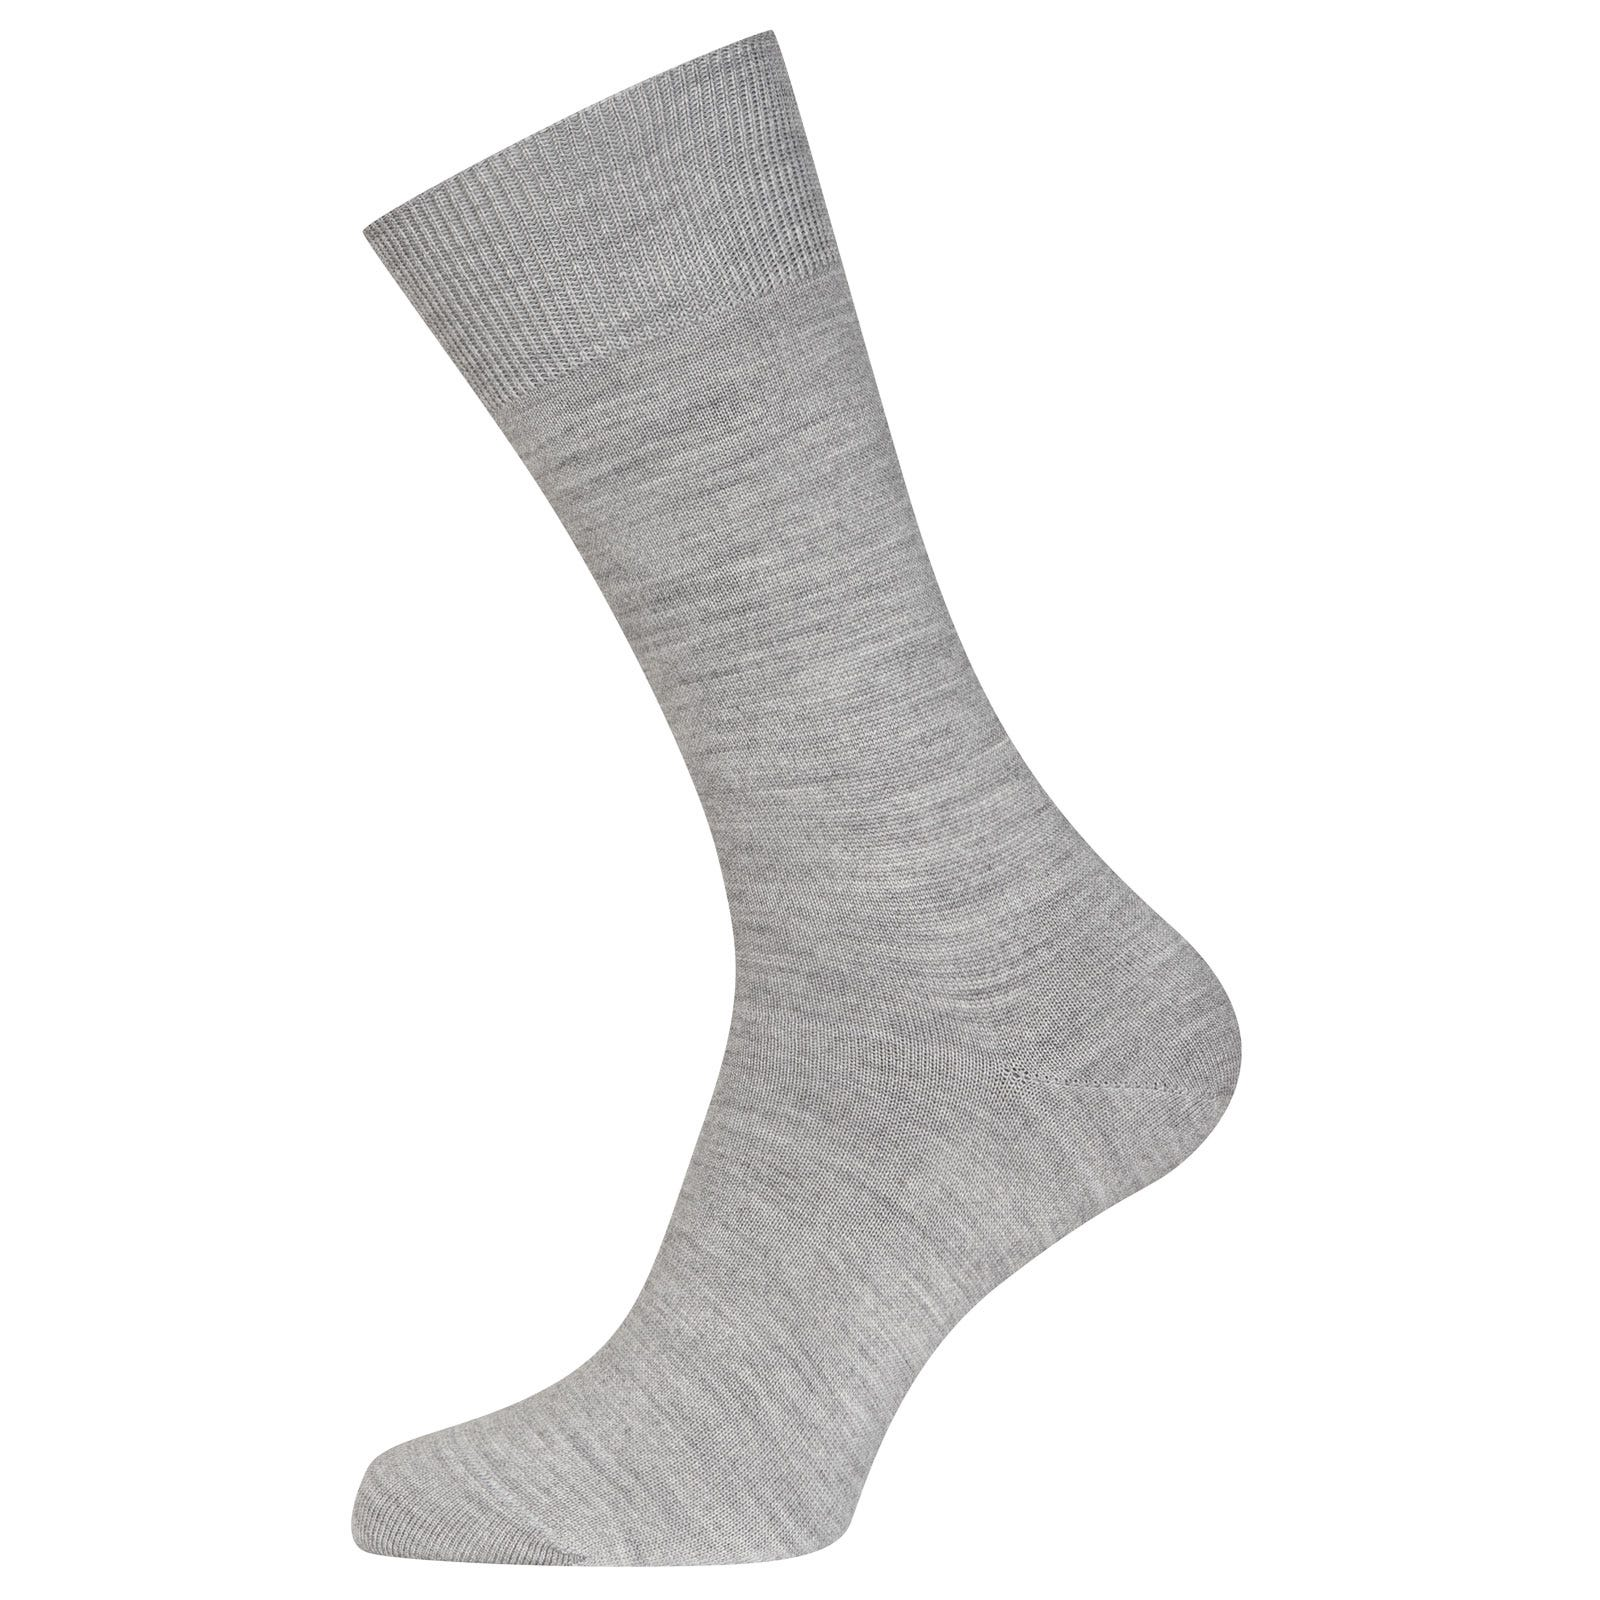 John Smedley Eros Sea Island Cotton and Cashmere Socks in Silver-S/M